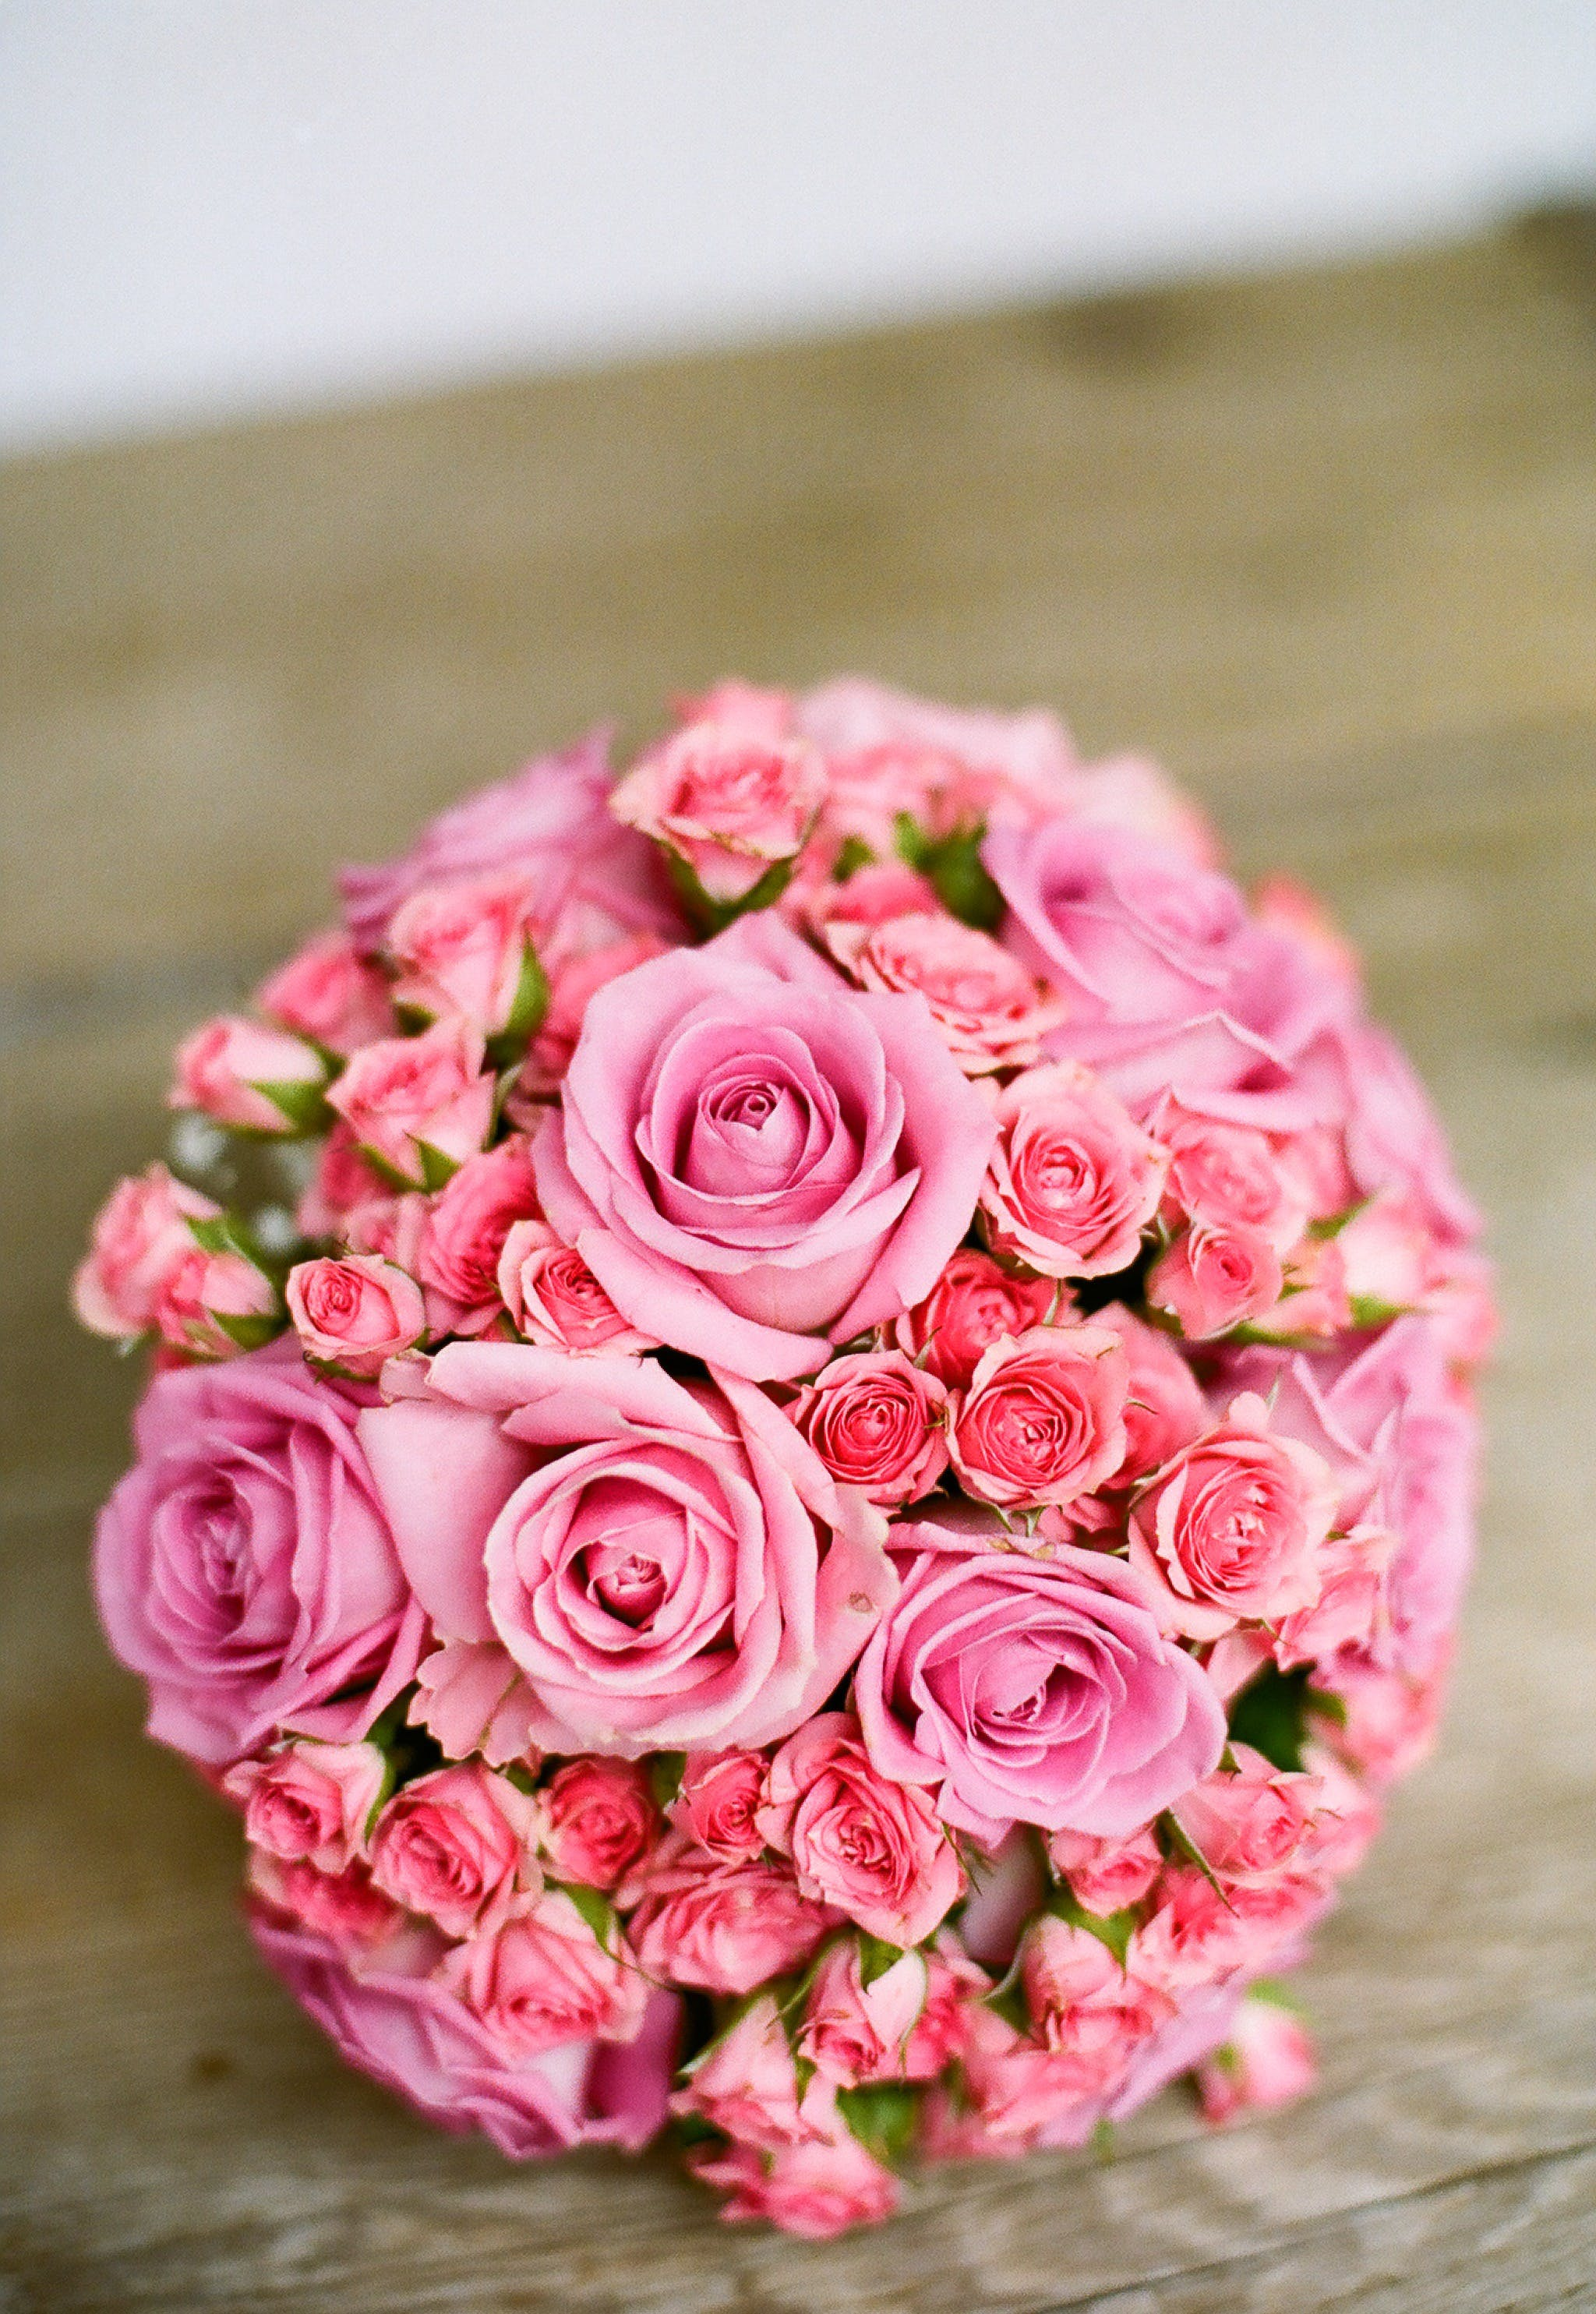 Pink Bouquet of Flowers on Table